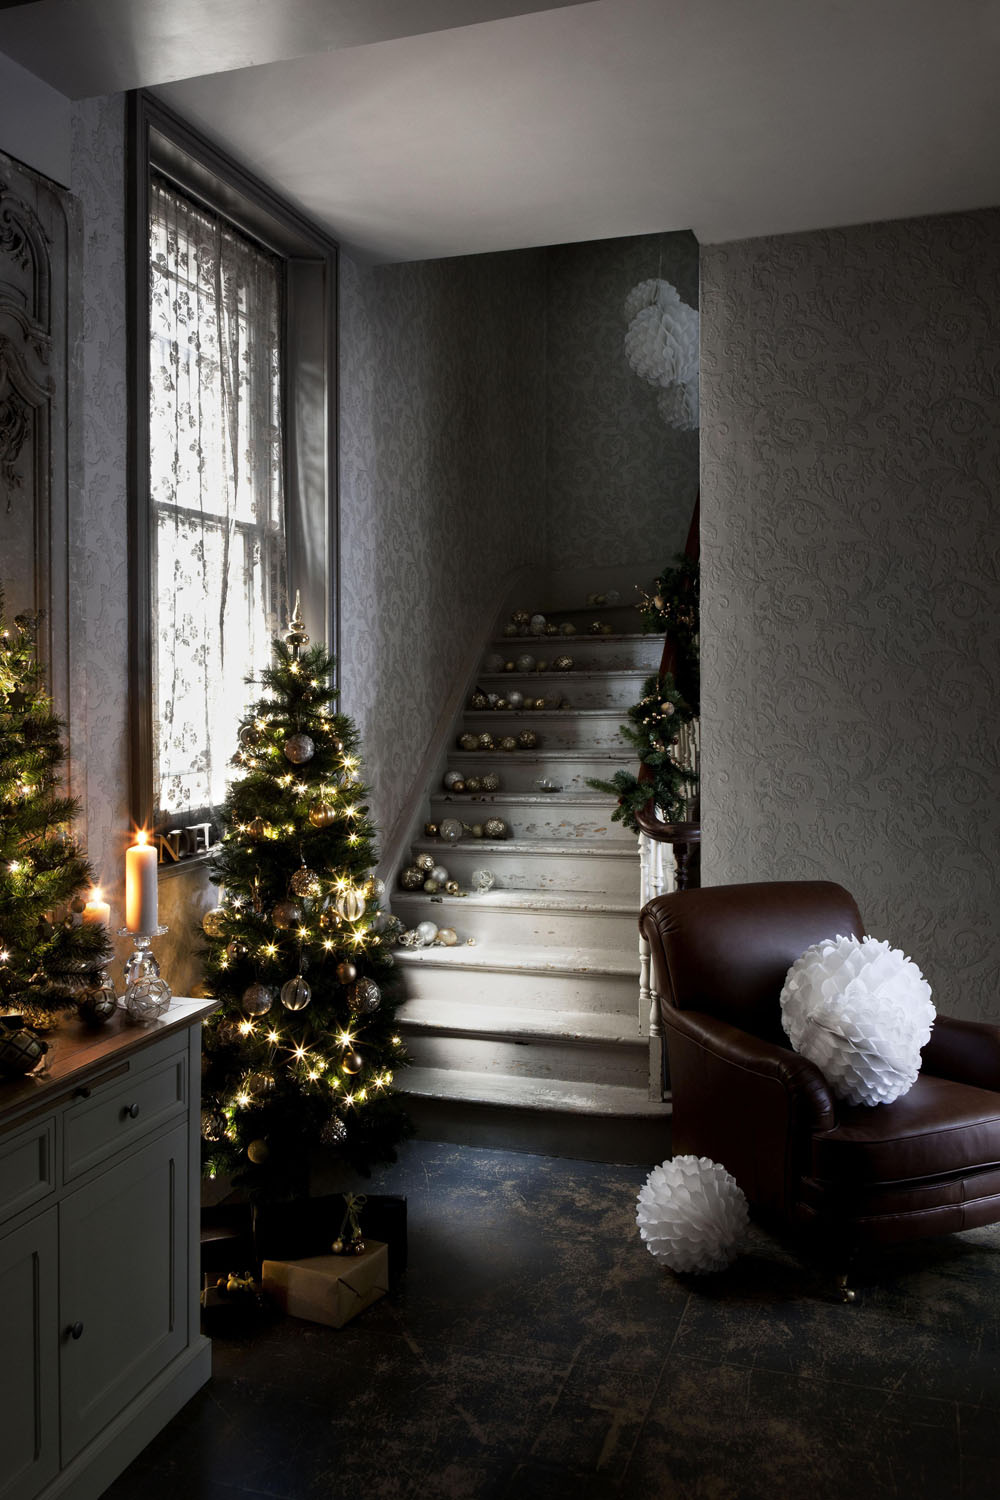 Modern Christmas Decorations for Inspiring Winter Holidays (27)